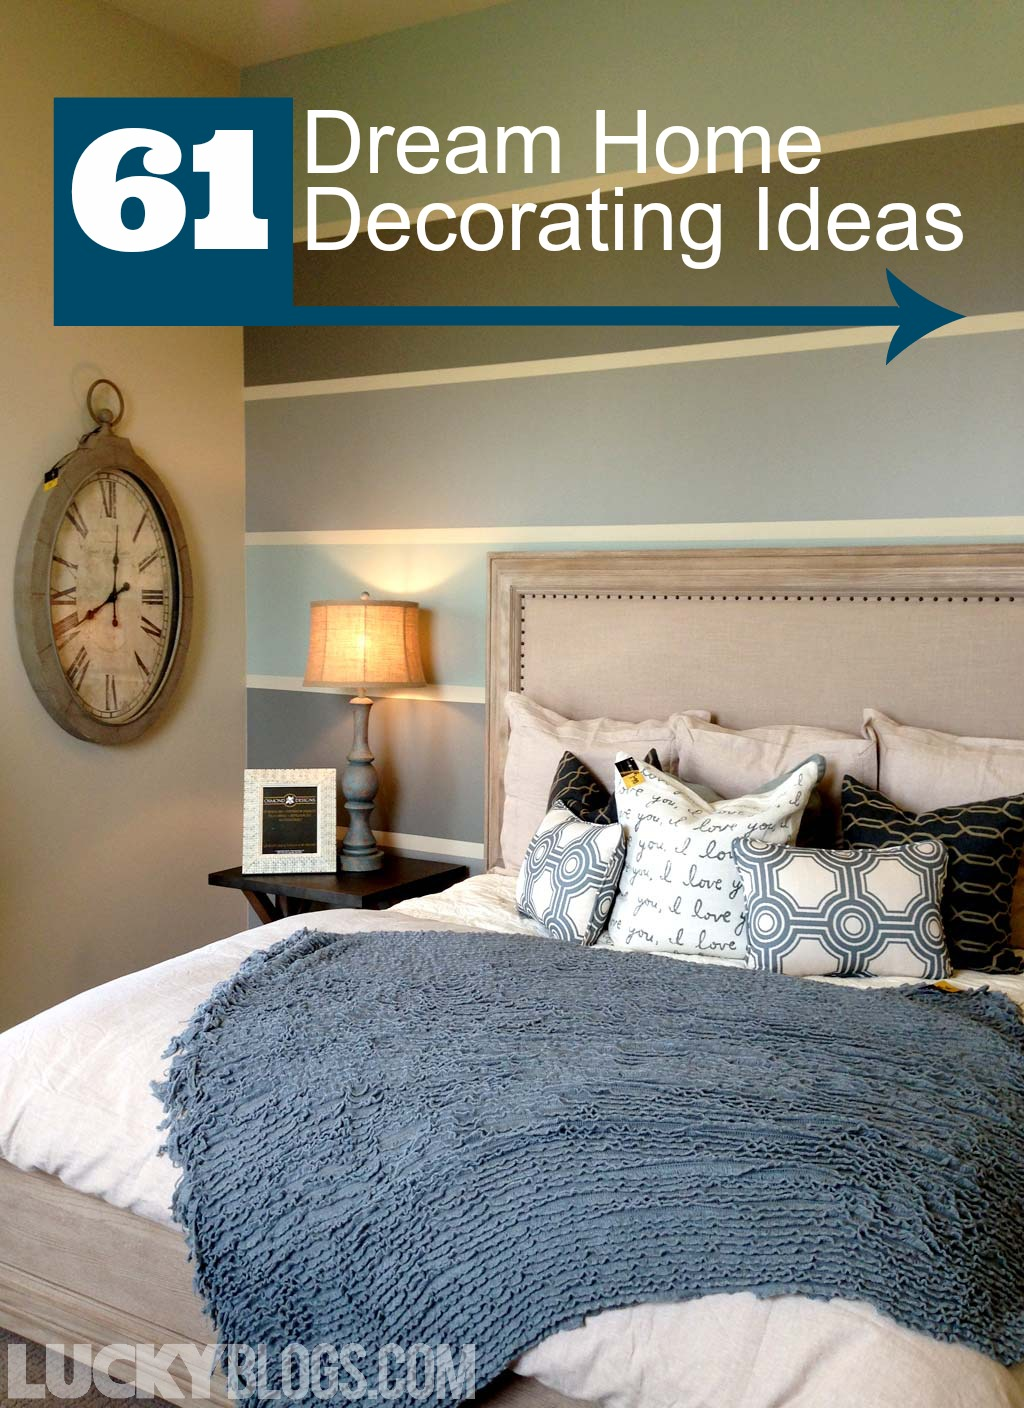 61 Dream Home Decorating Ideas